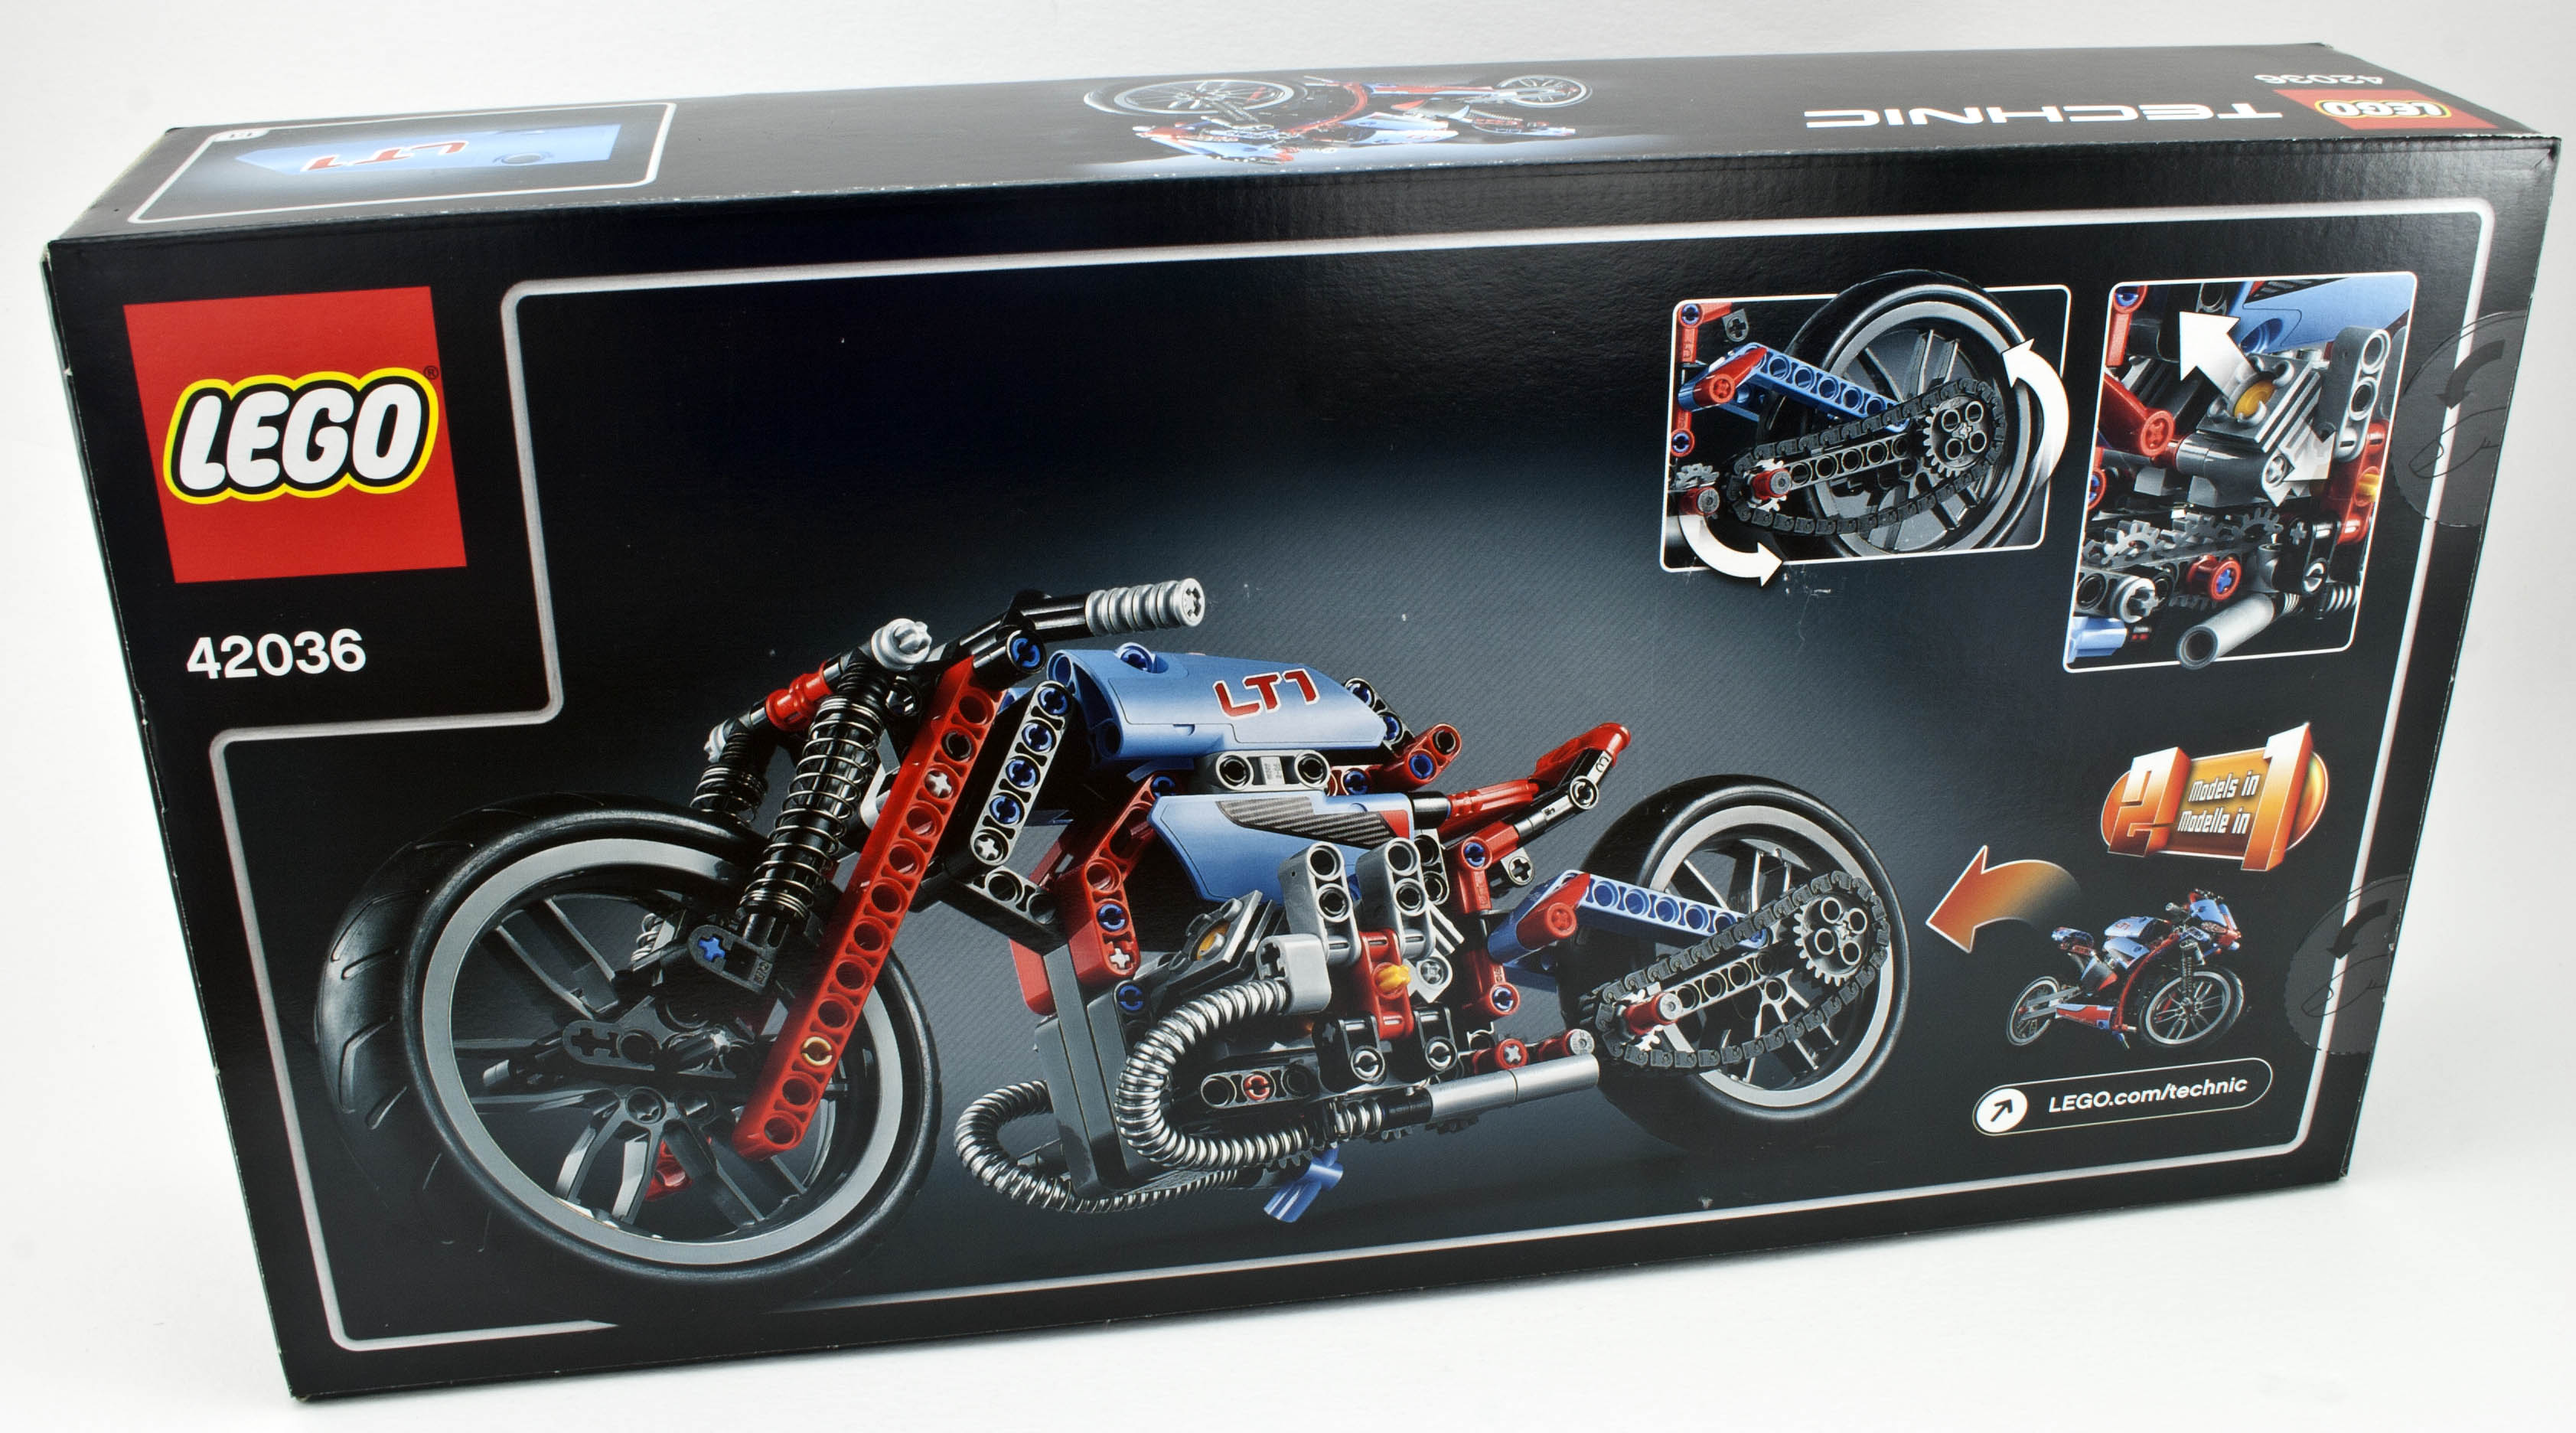 review 42036 street motorcycle rebrickable build. Black Bedroom Furniture Sets. Home Design Ideas